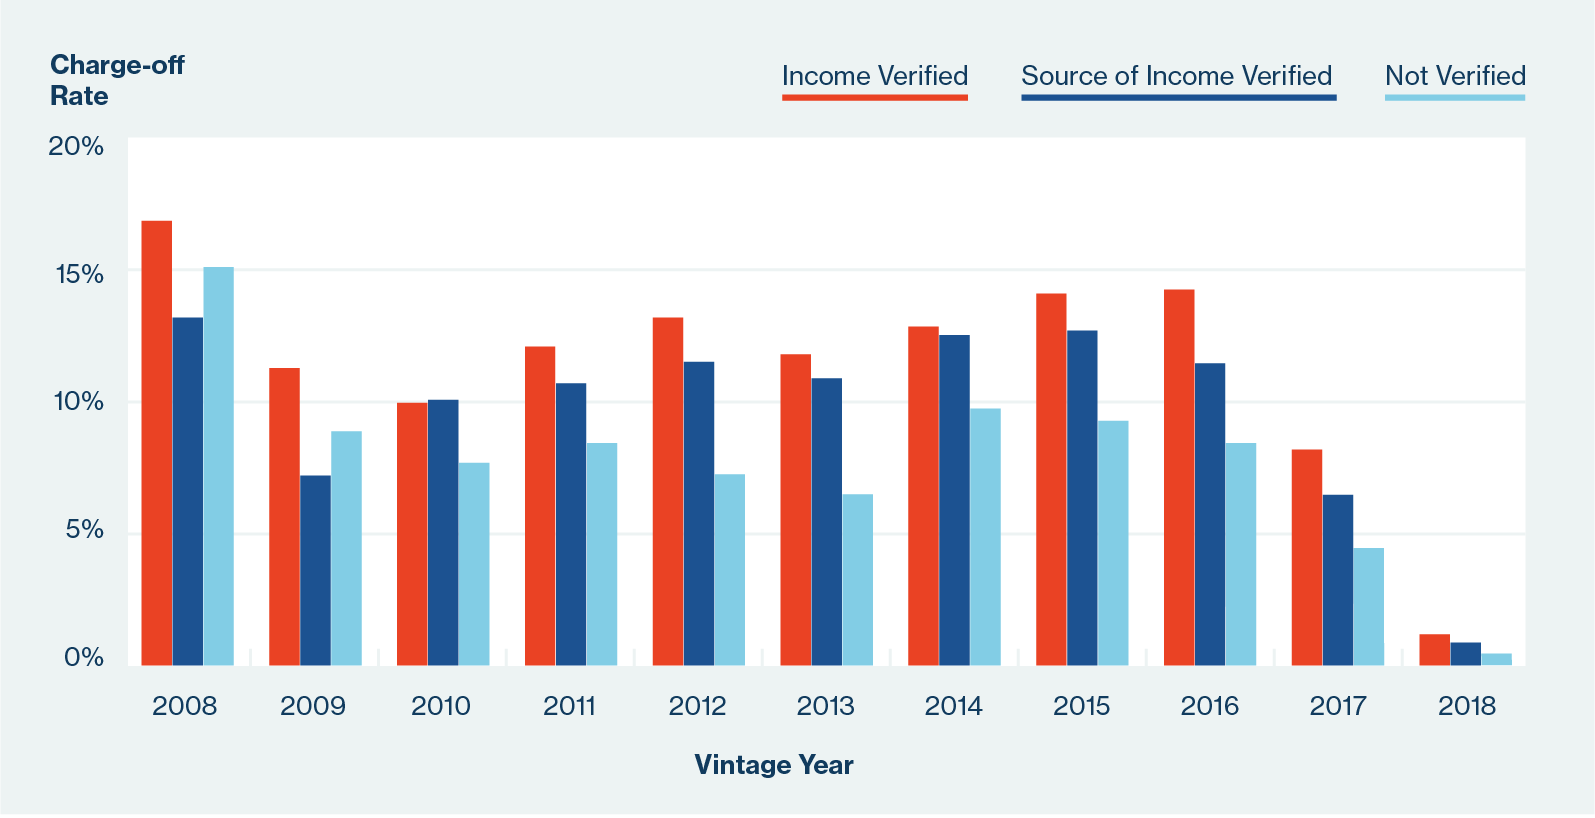 Chart comparing charge-off rates among income verified, source of income verified and not verified.